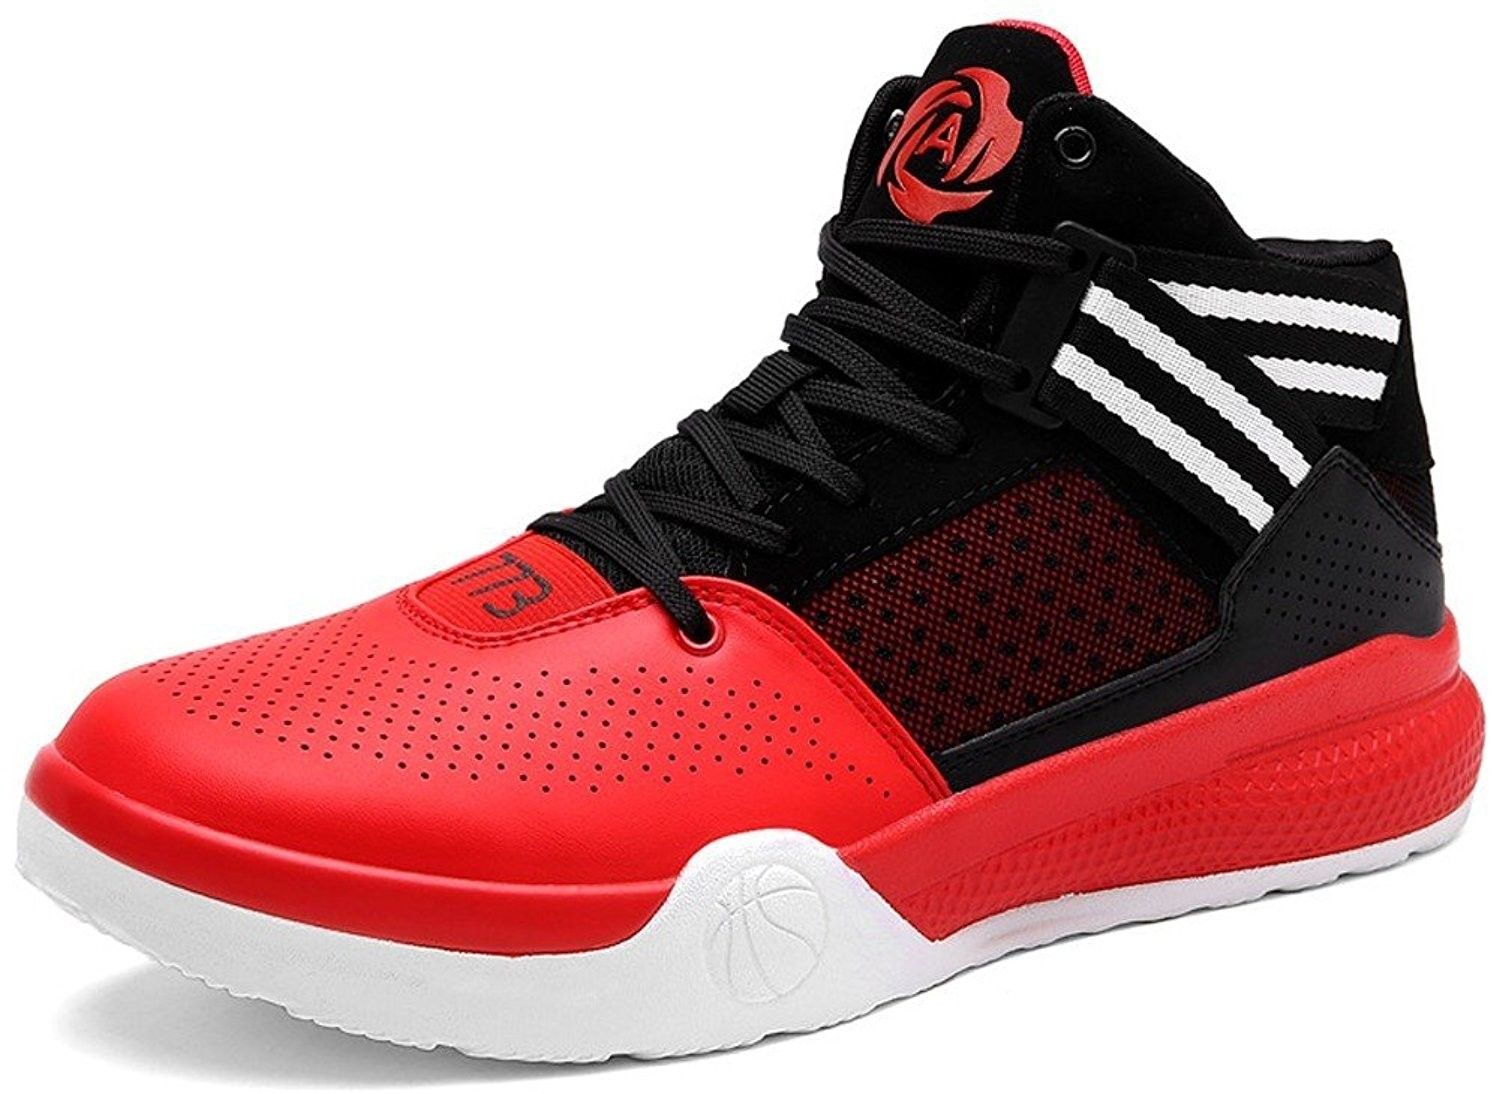 Mens Basketball Shoes Hi-Top Trainers Shoes Lovers Running Shoes Outdoor Sneaker